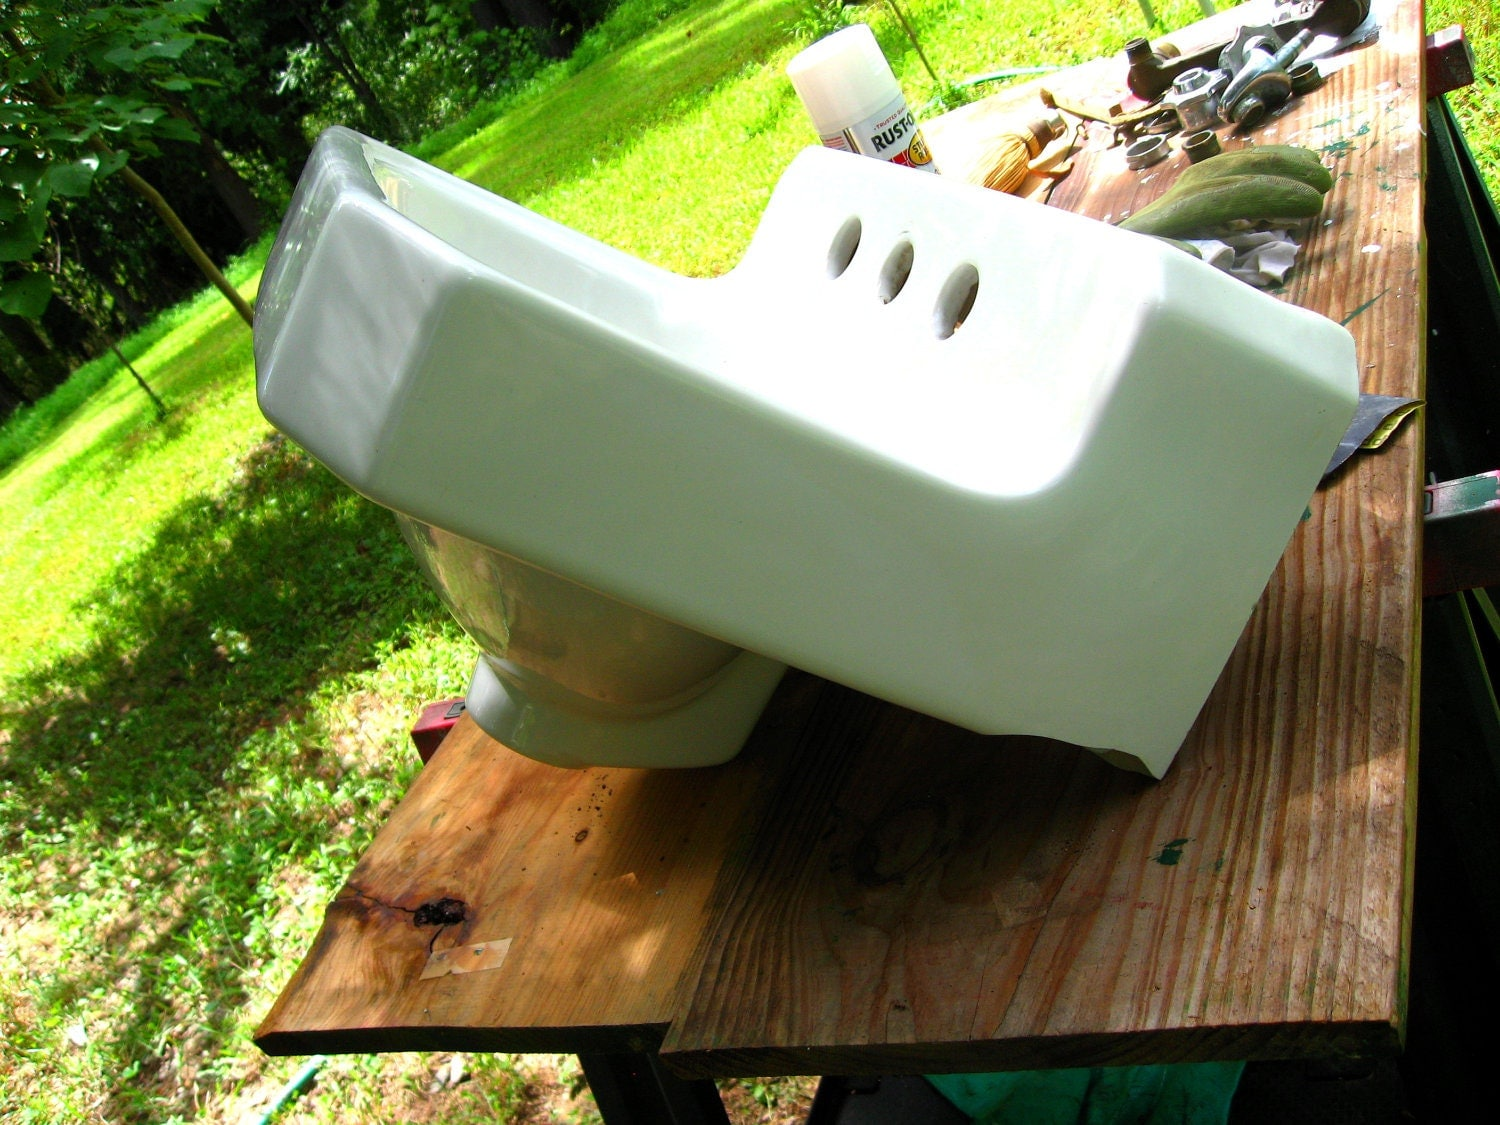 Vintage American Standard Wall Hung Bathroom Sink Retro